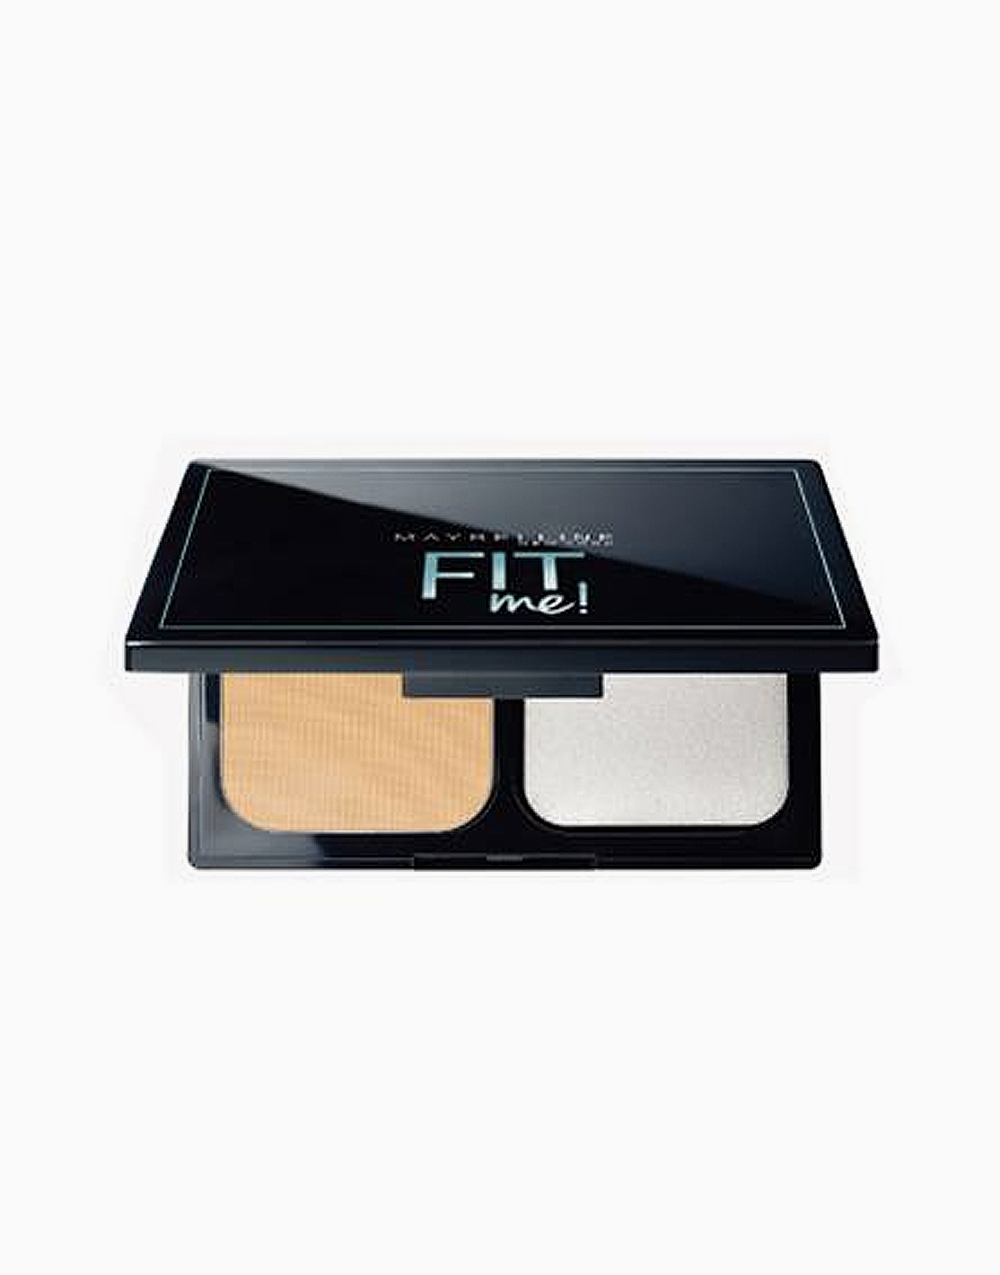 Fit Me Powder Foundation by Maybelline | 220 Natural Beige